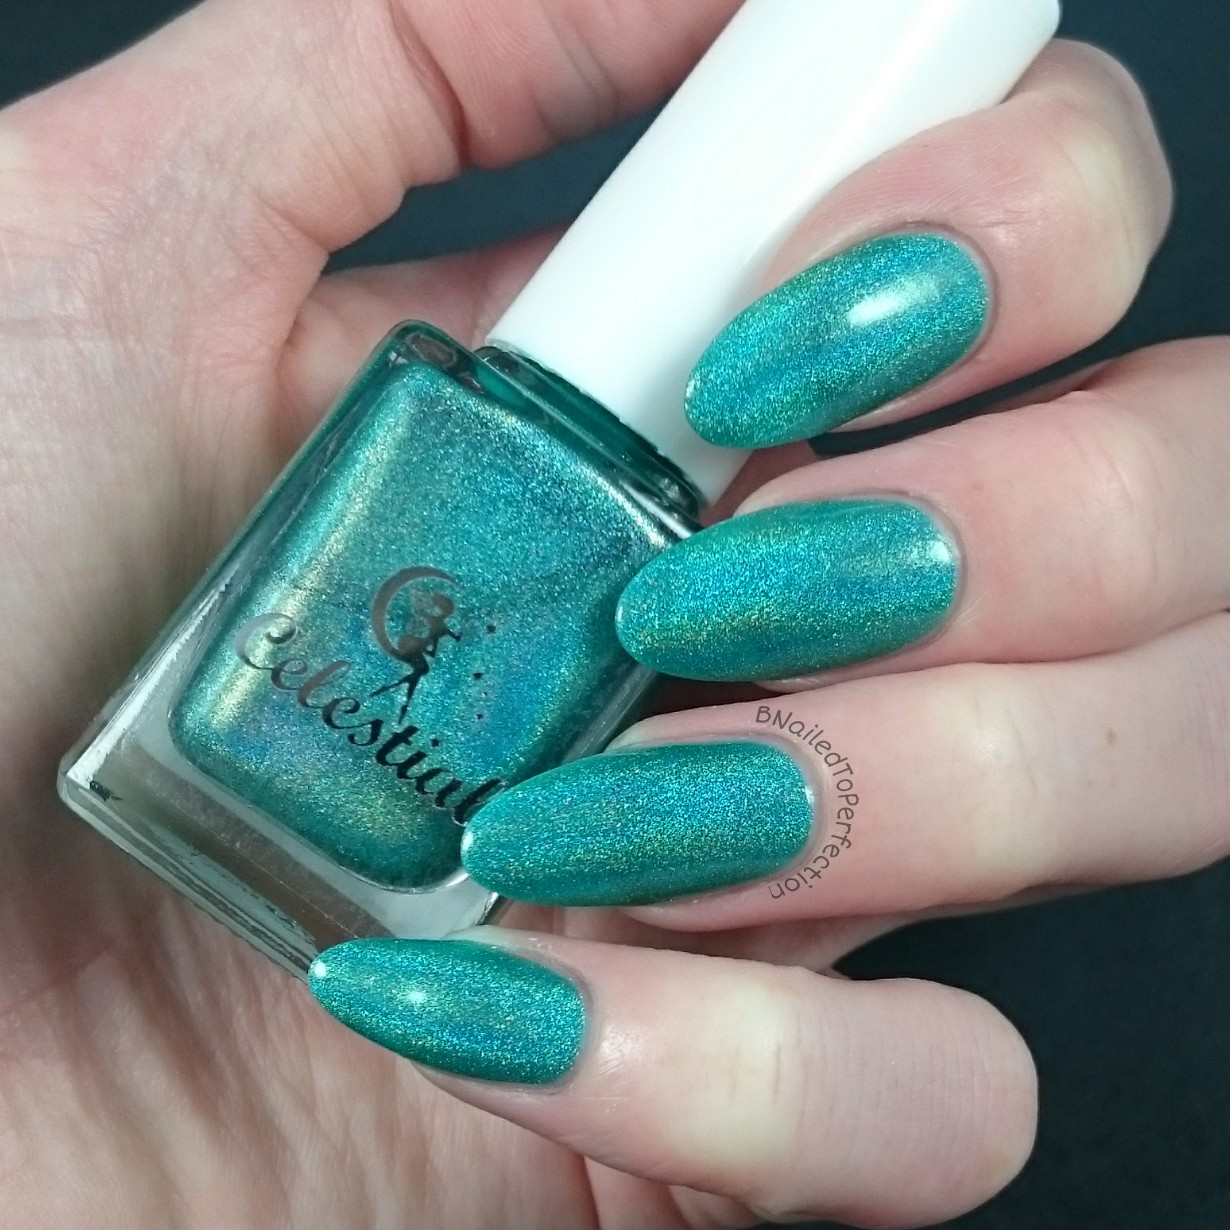 B nailed to perfection celebrate with nyx celestial cosmetics this picture is probably the most colour accurate its got a strong holographic finish and green tones youll see this in another picture soon prinsesfo Image collections